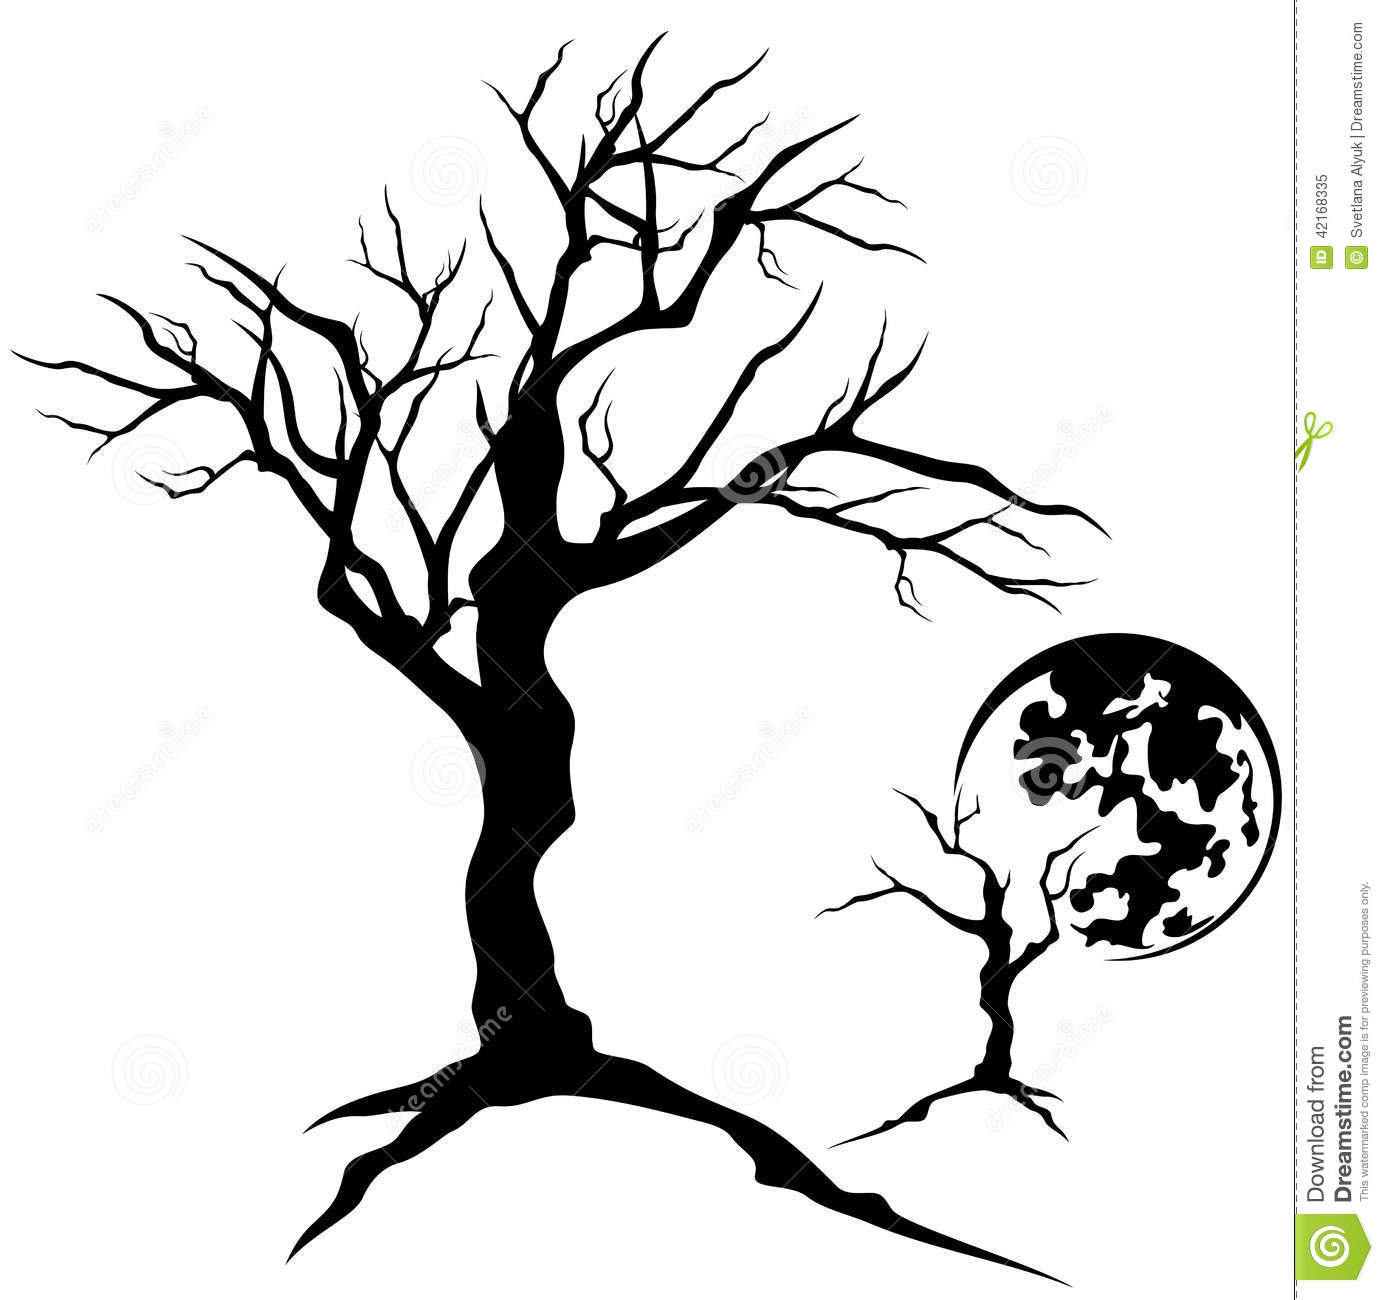 Stock Illustration Creepy Tree Twisted Design Bare Branches Detailed Silhouette Image42168335 on scary eyes clip art free